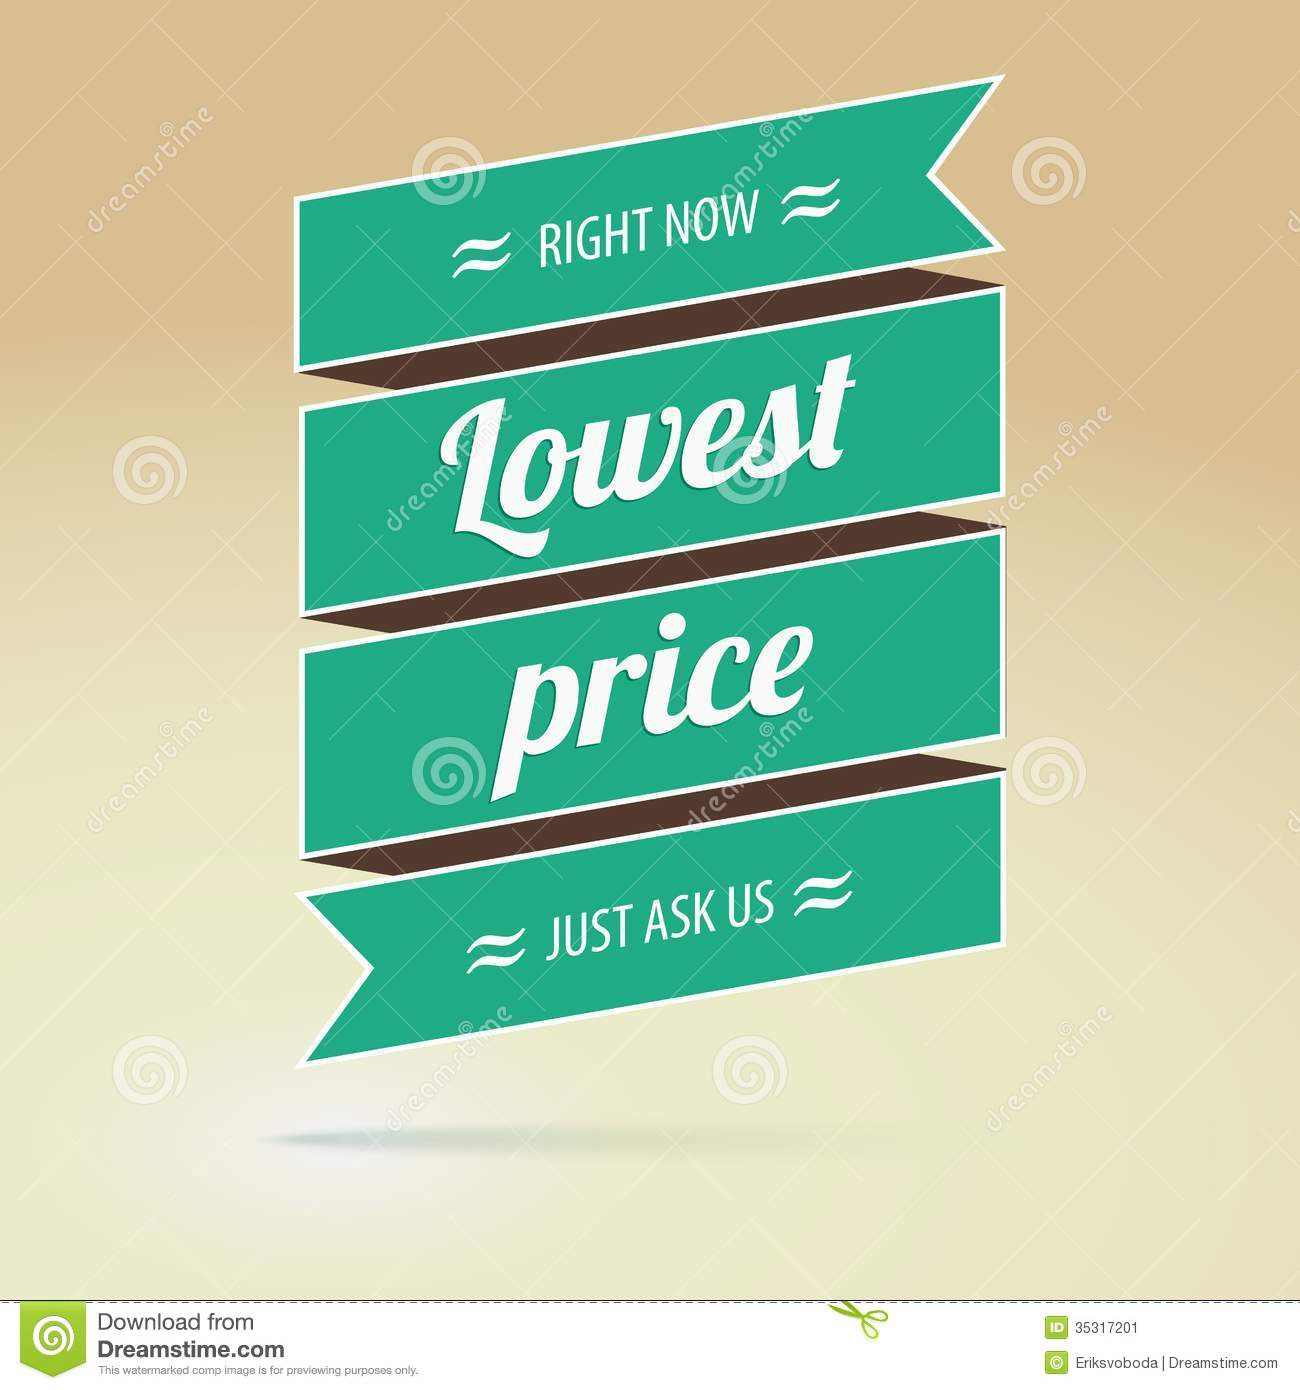 Lowest Price Poster, Vector Illustration Stock Image - Image: 35317201